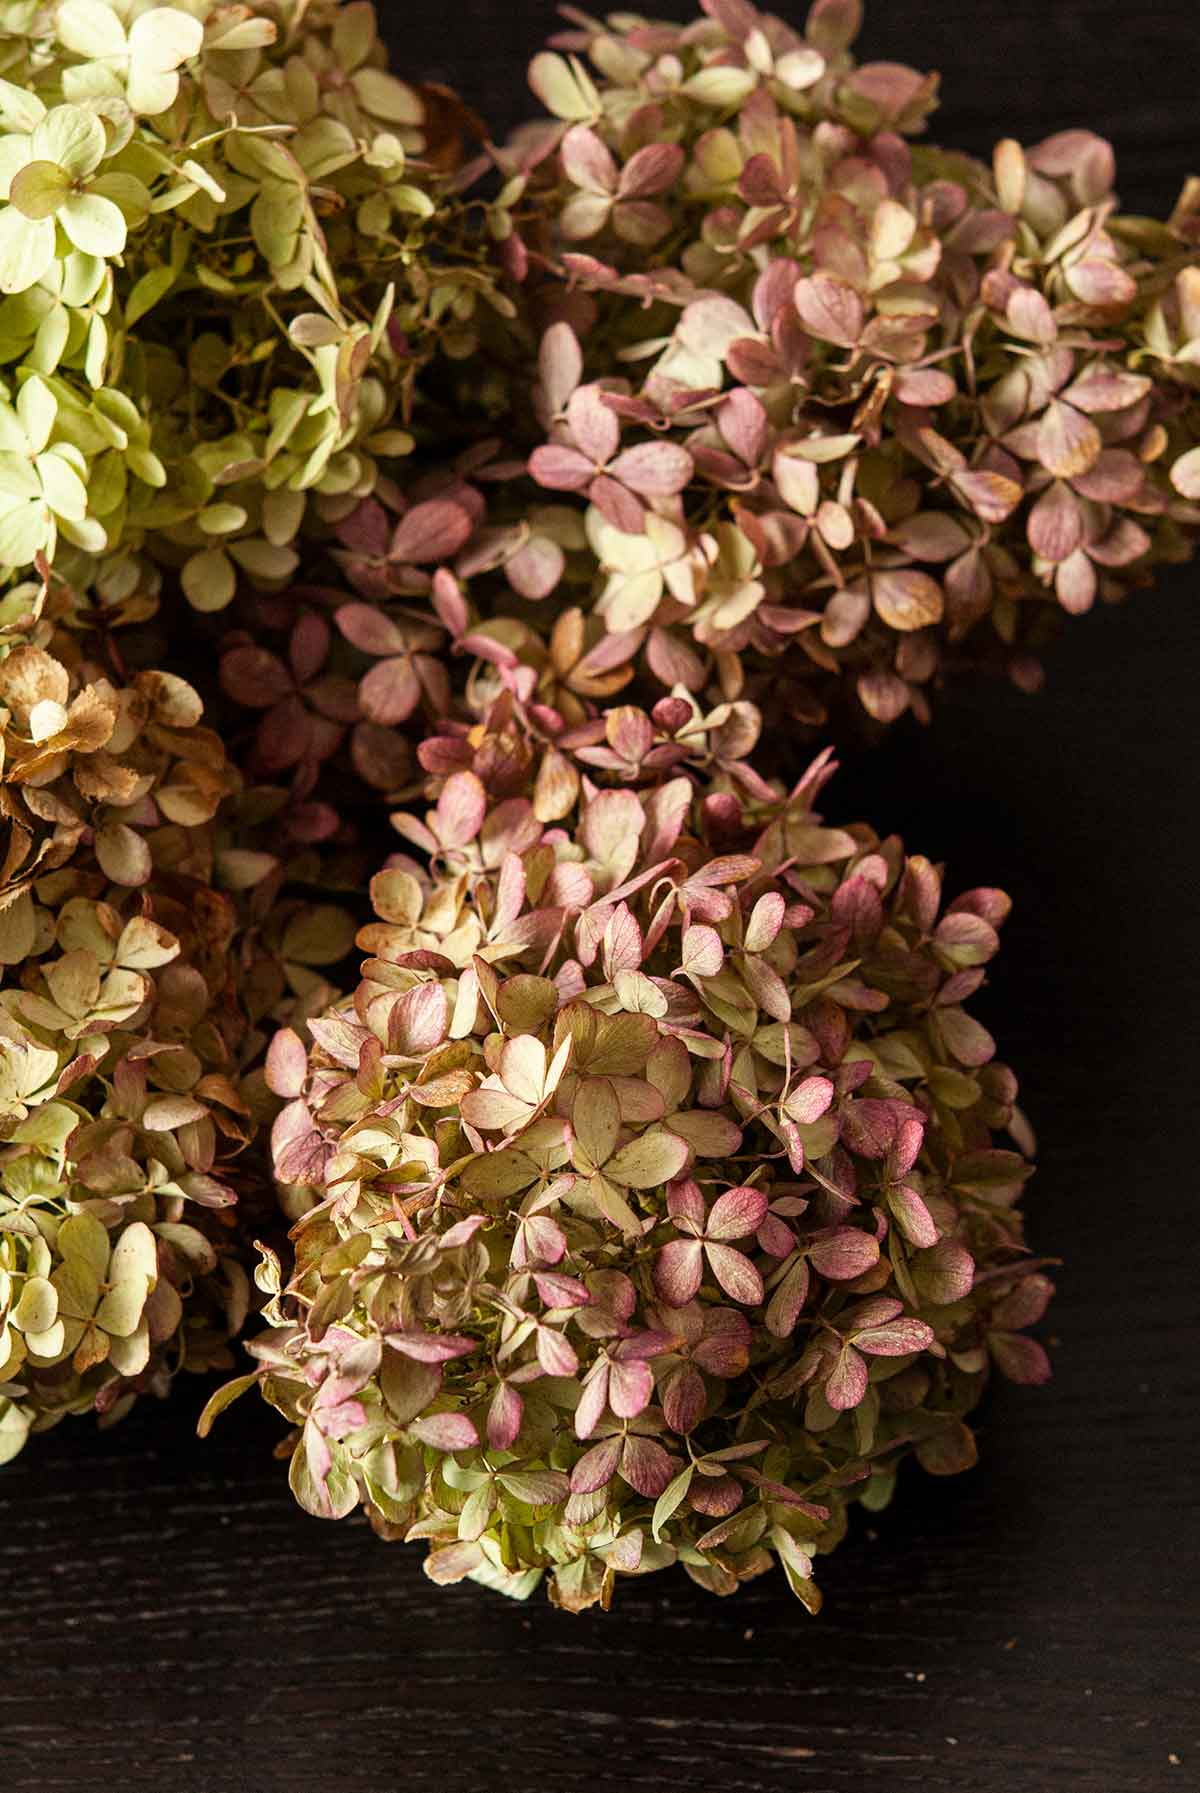 Hydrangea flowers on a table.